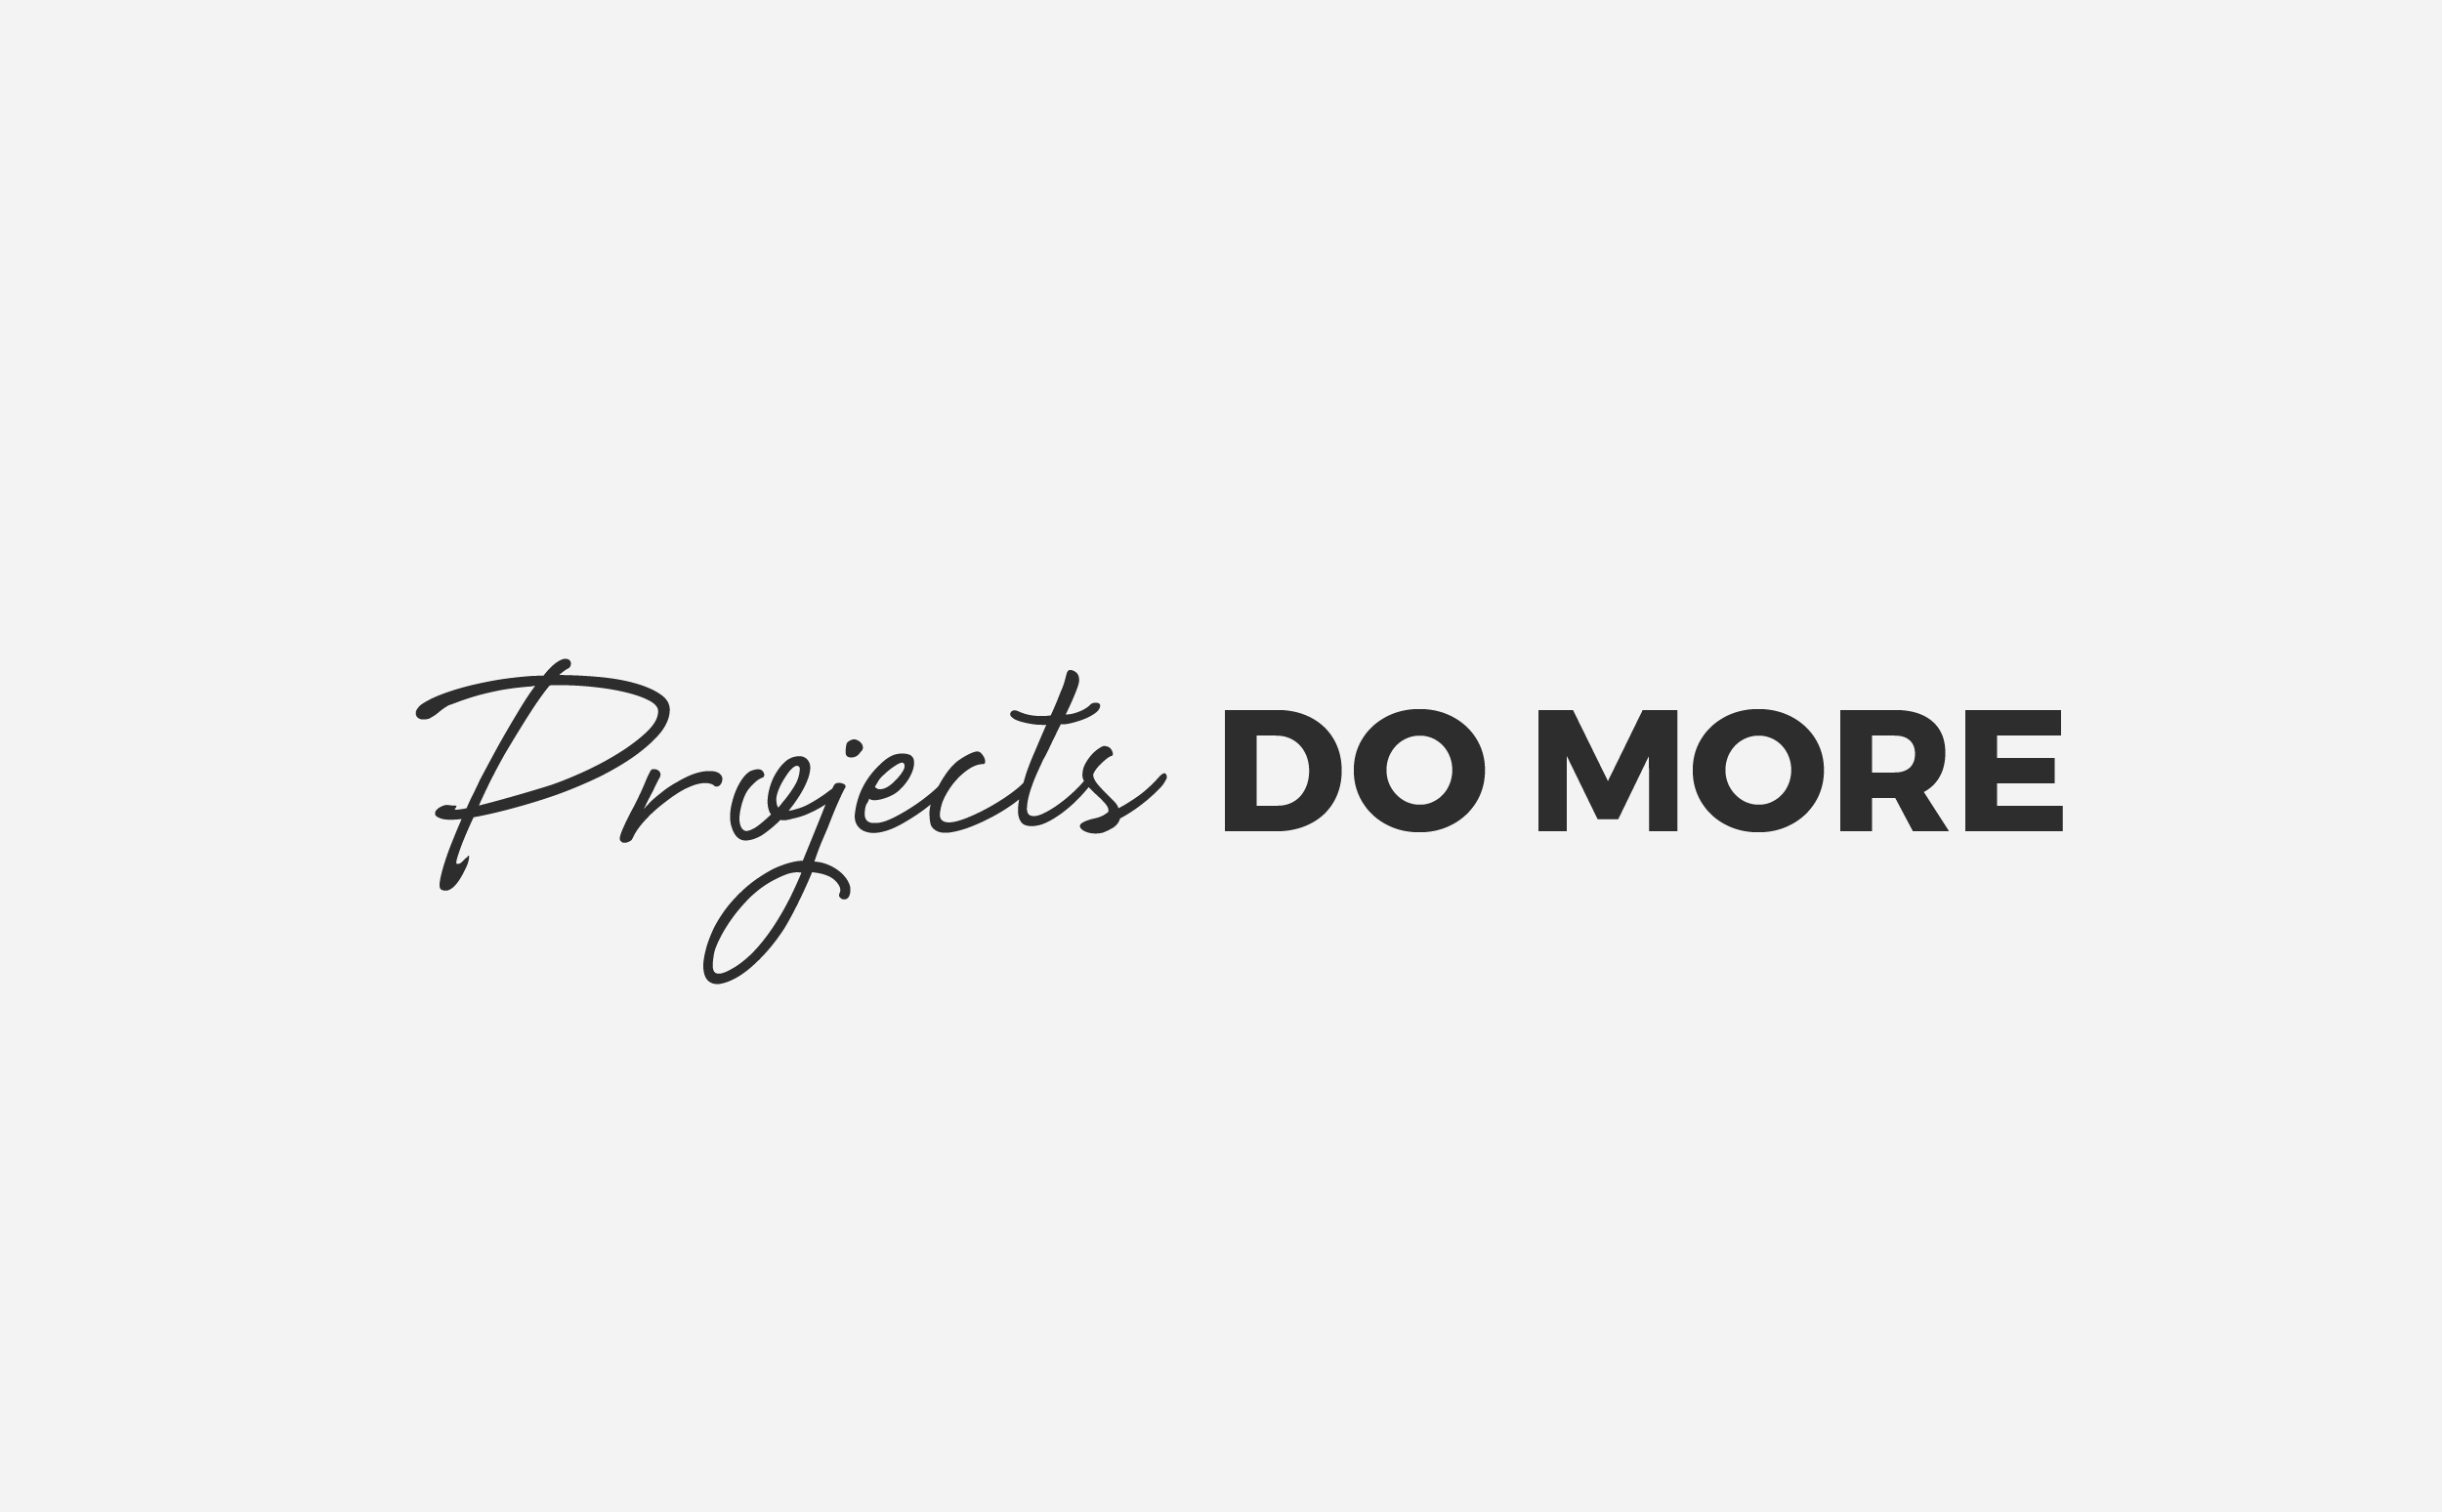 The_Great_Projects_Projects_Do_More_Logo-01-01